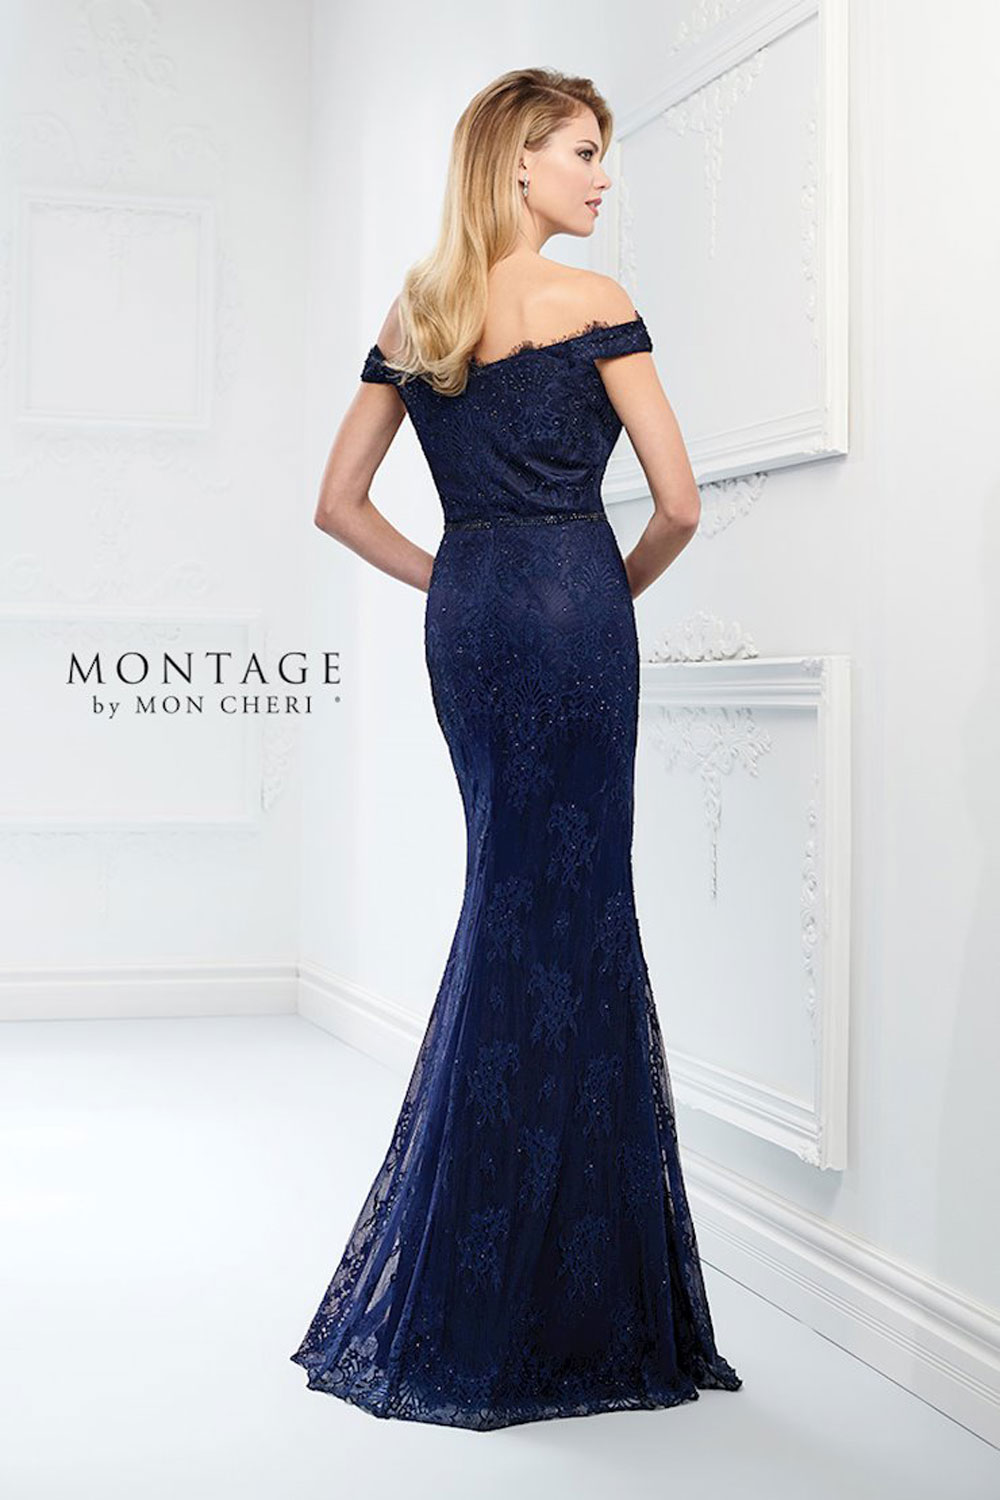 Evening dress with off-the-shoulder